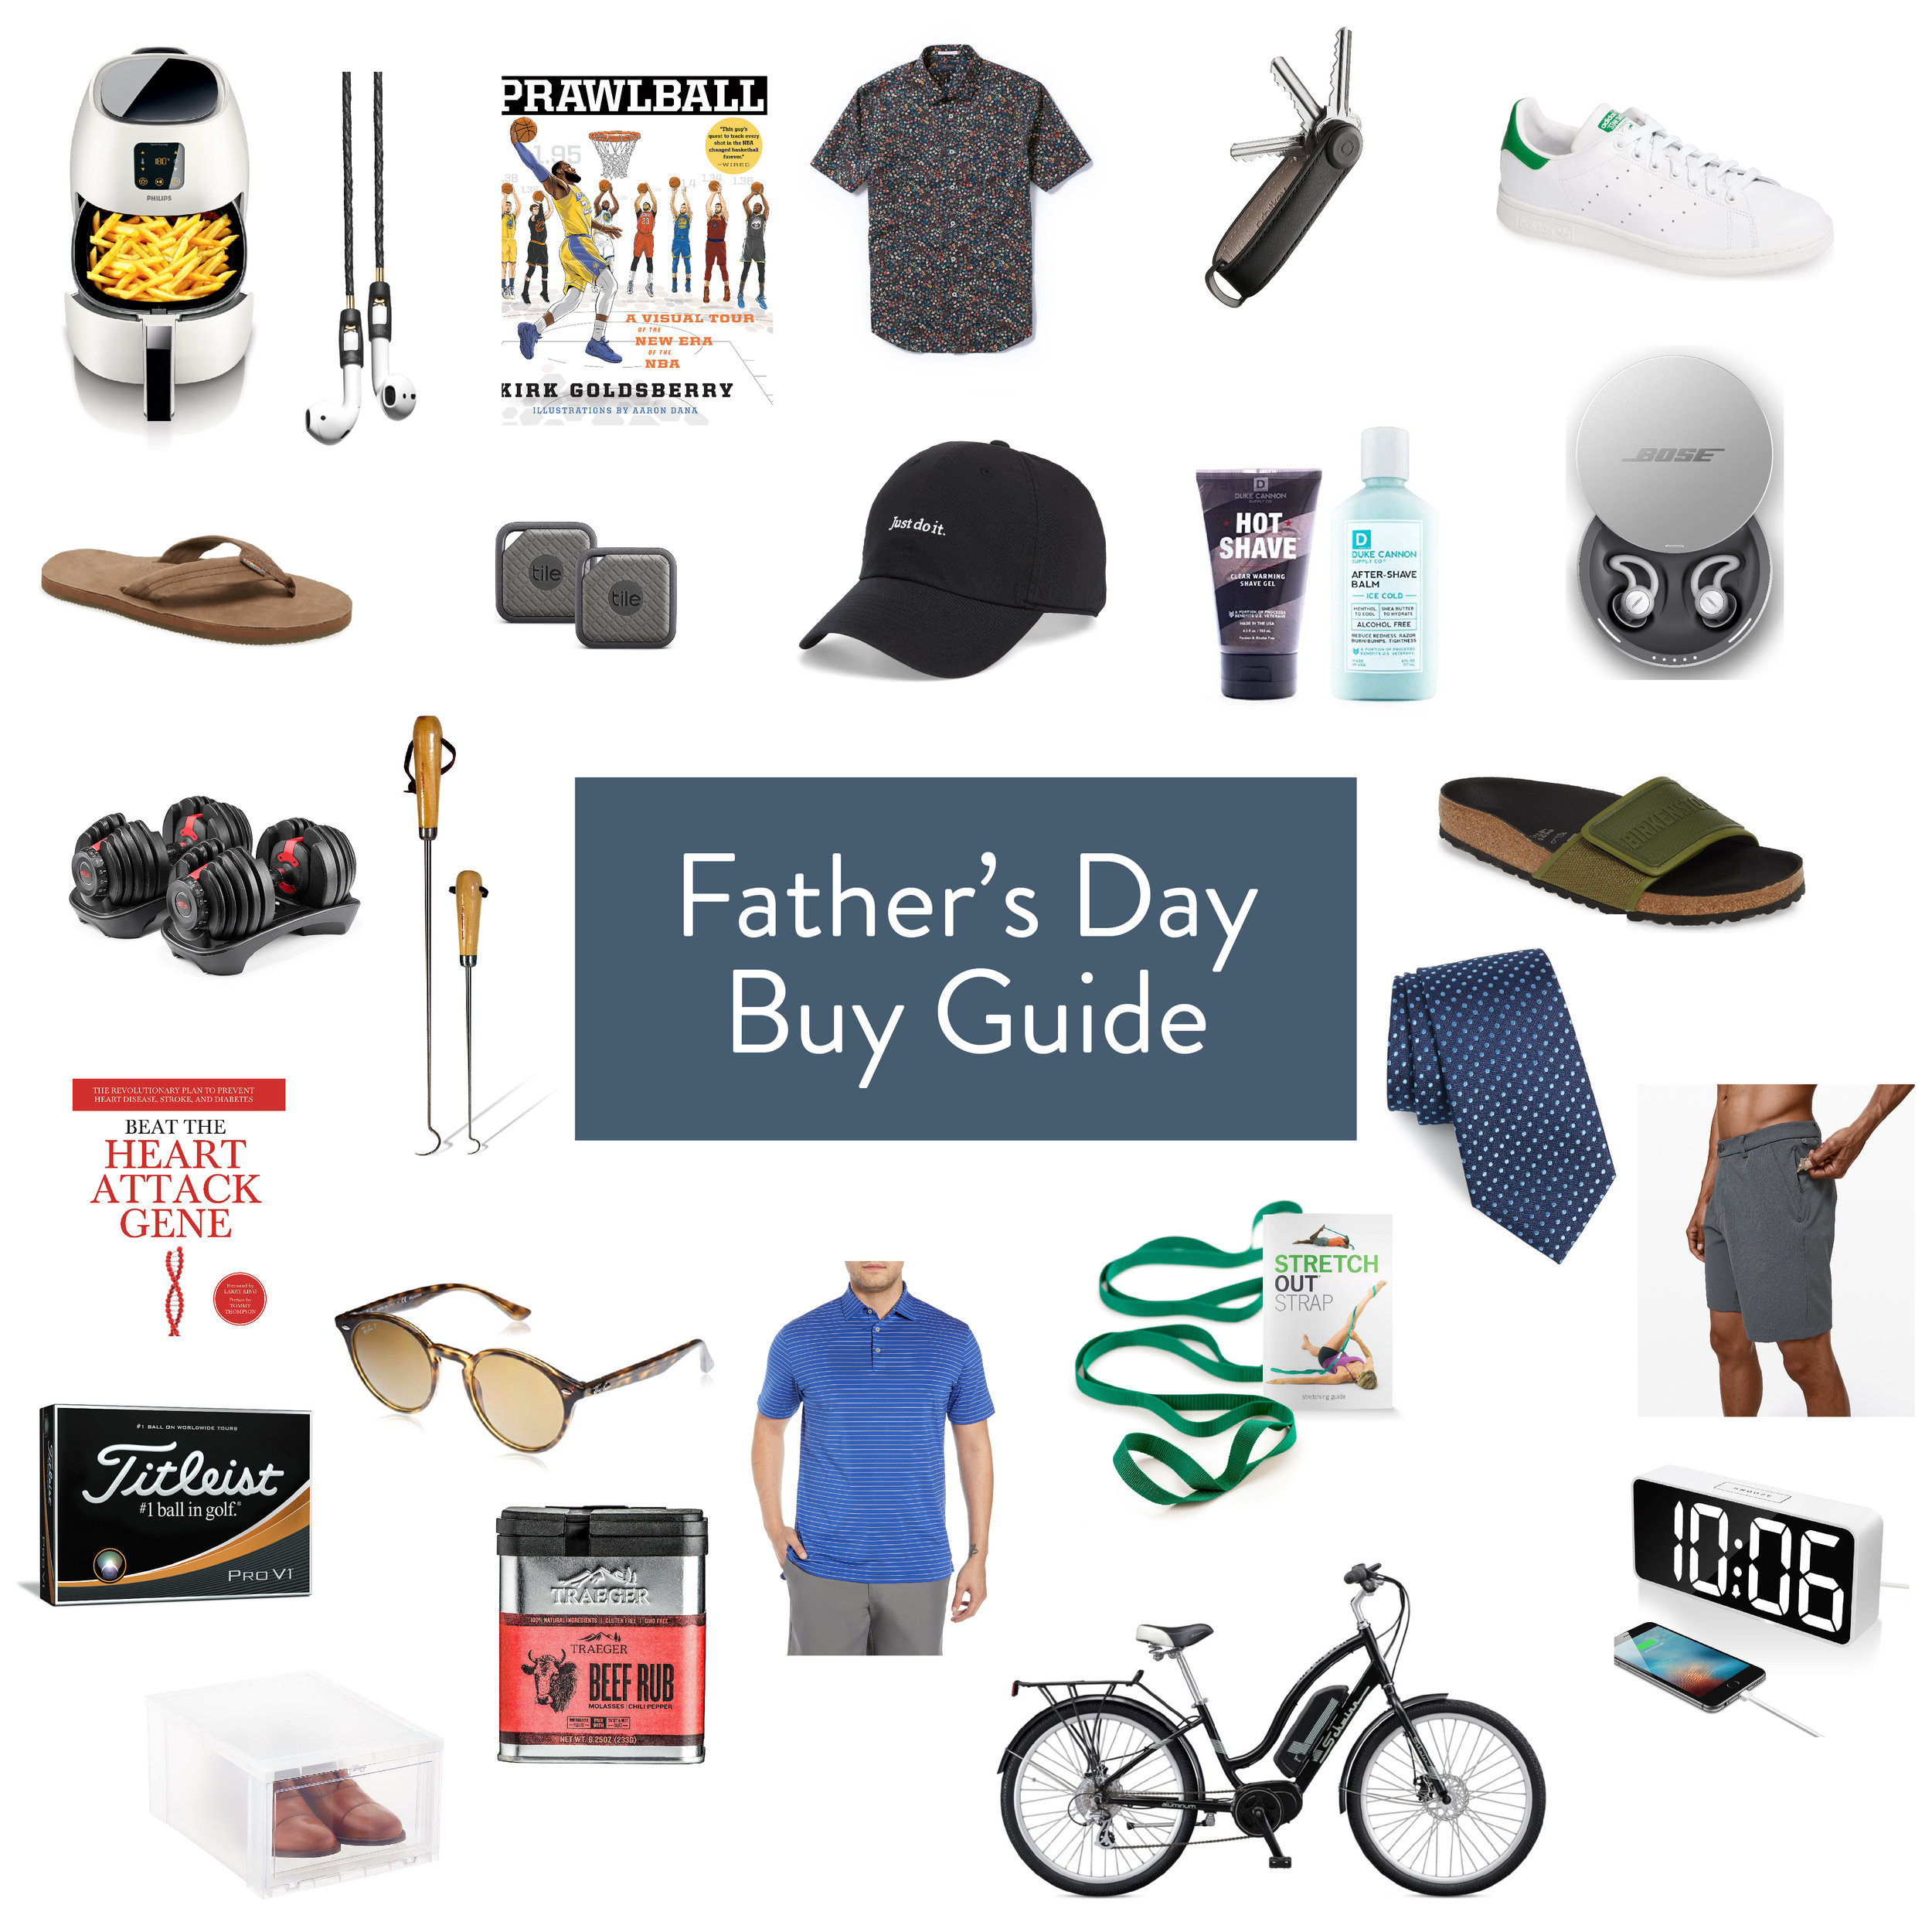 fathersdaycollage-04.jpg